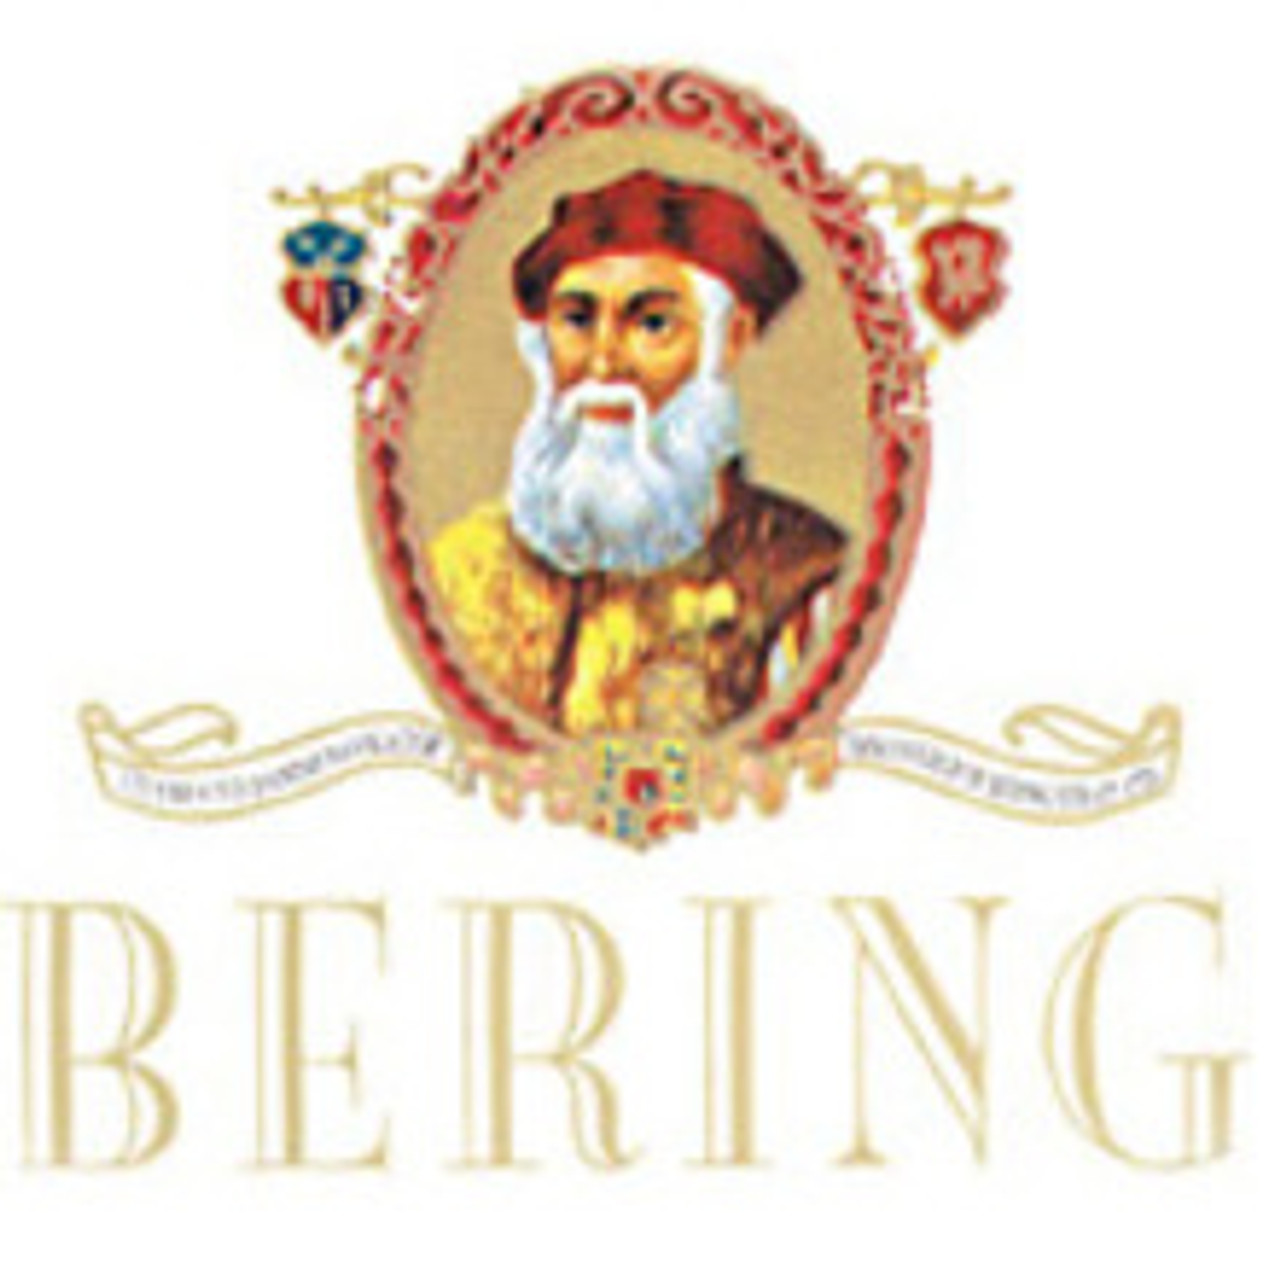 Bering Belicoso Natural Cigars - 6 3/4 x 52 (Box of 25)